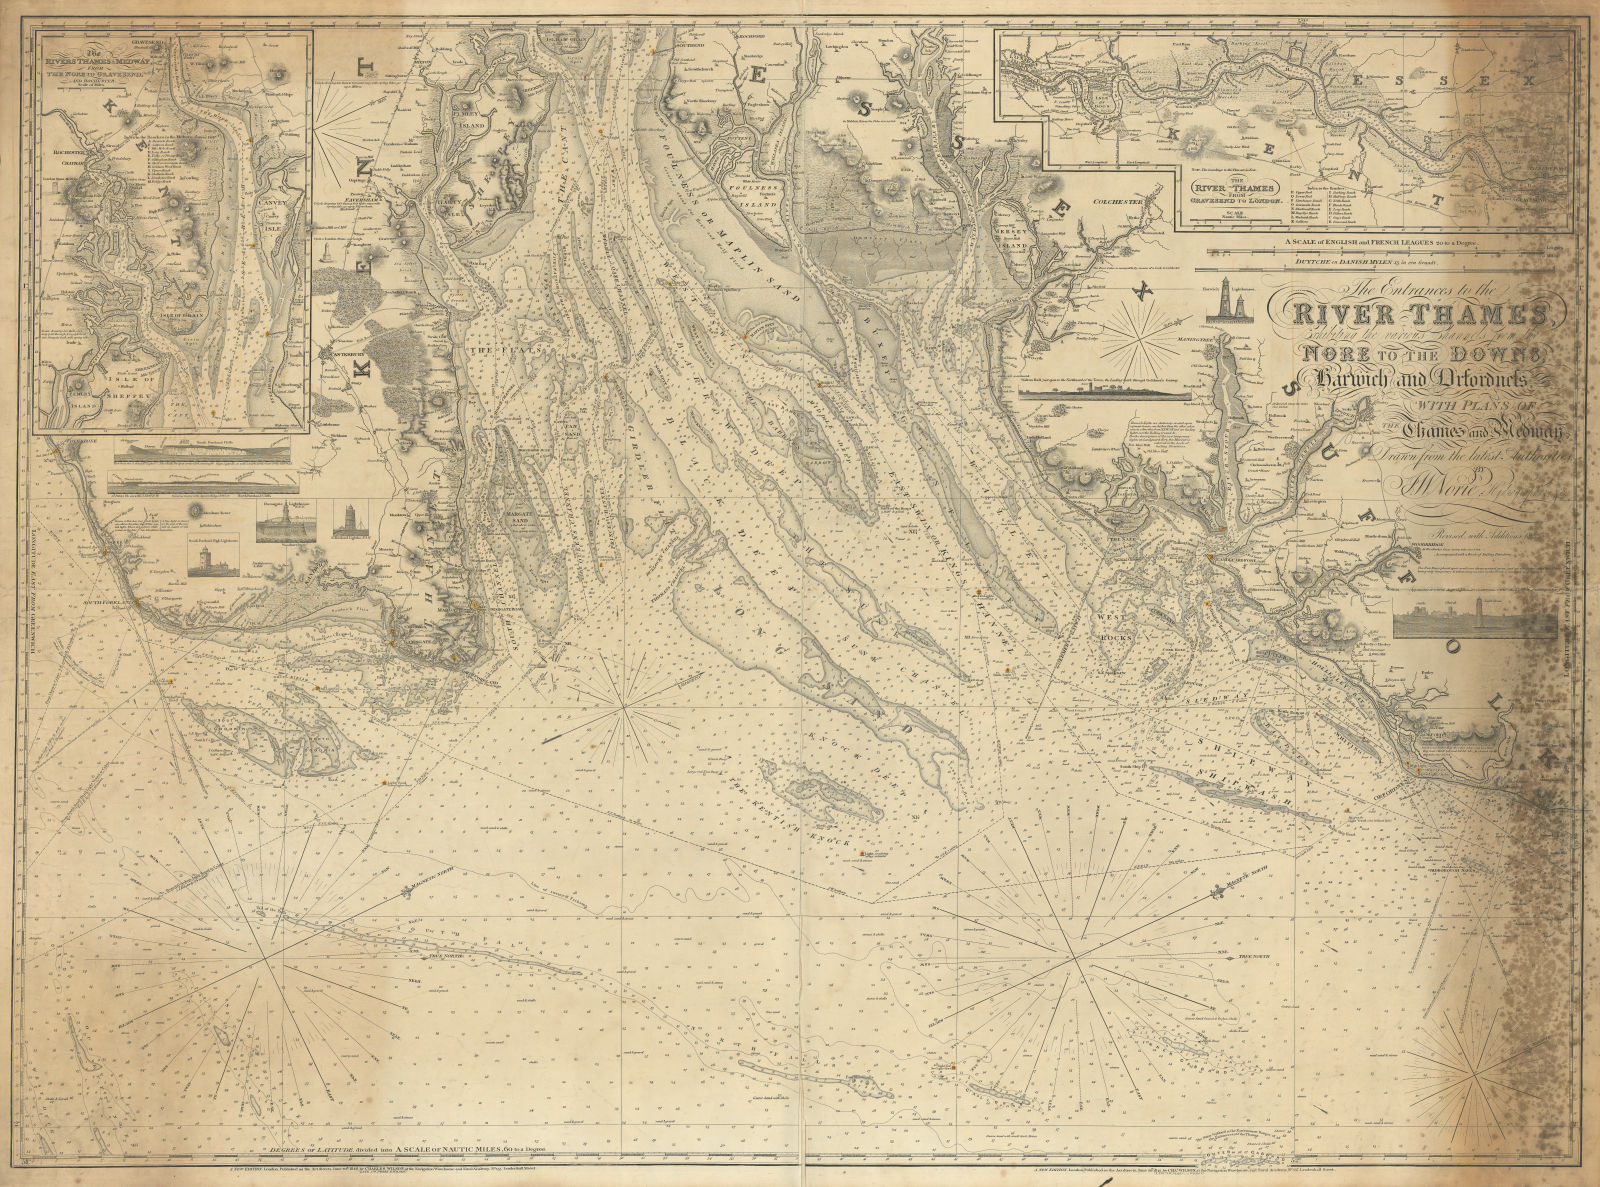 """""""The entrance to the River Thames…"""" Norie & Wilson sea chart 1842 (1842) map"""